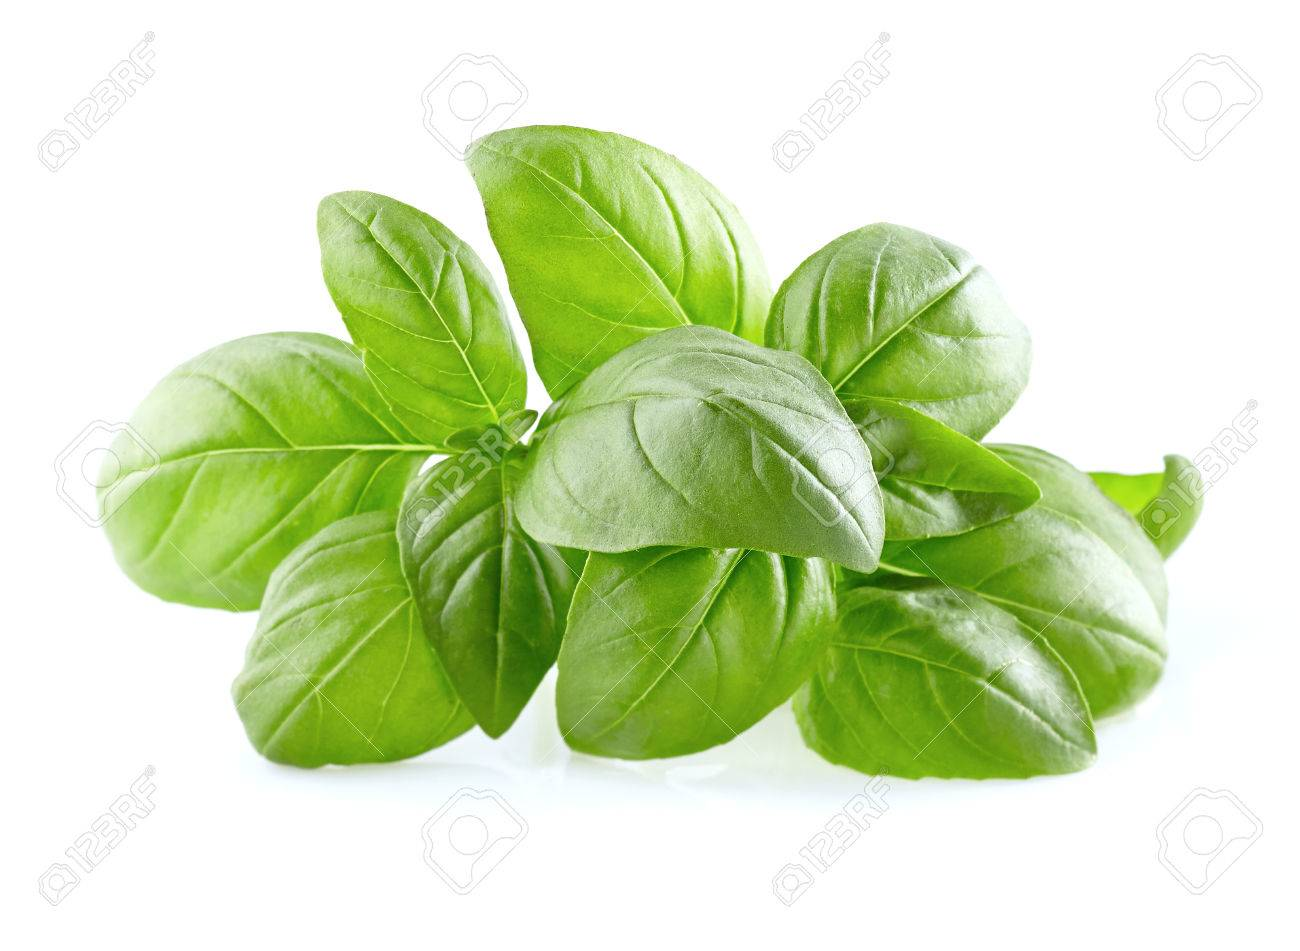 Basil leaves on a white background - 60384103